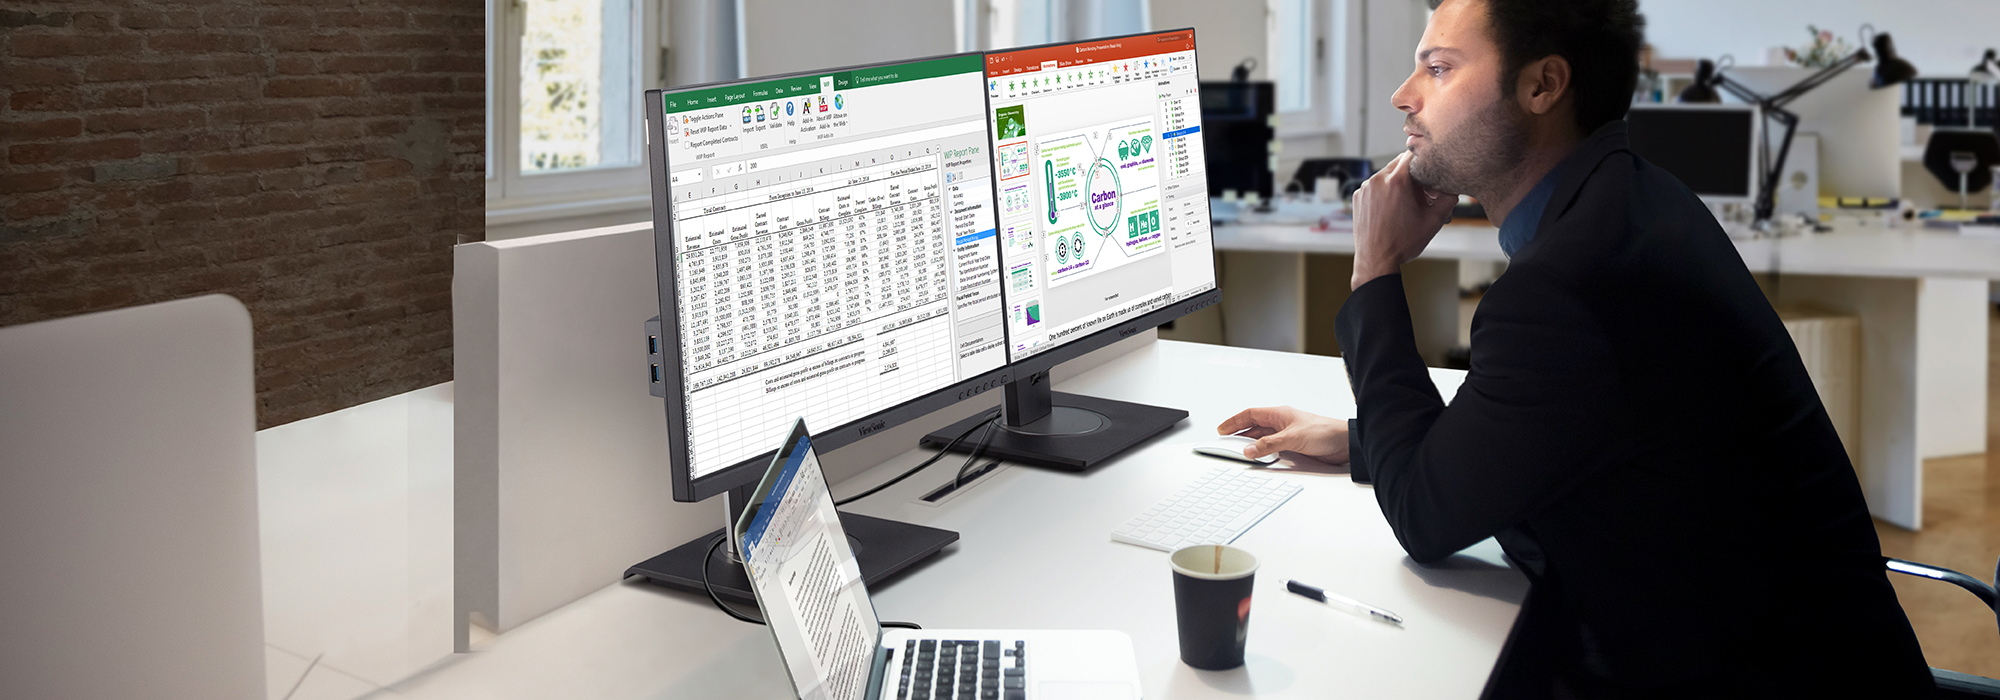 ViewSonic Launches New Docking Monitor for Transformative and Efficient Workspaces; Integrated Software Offers Easy On-Screen Display Control